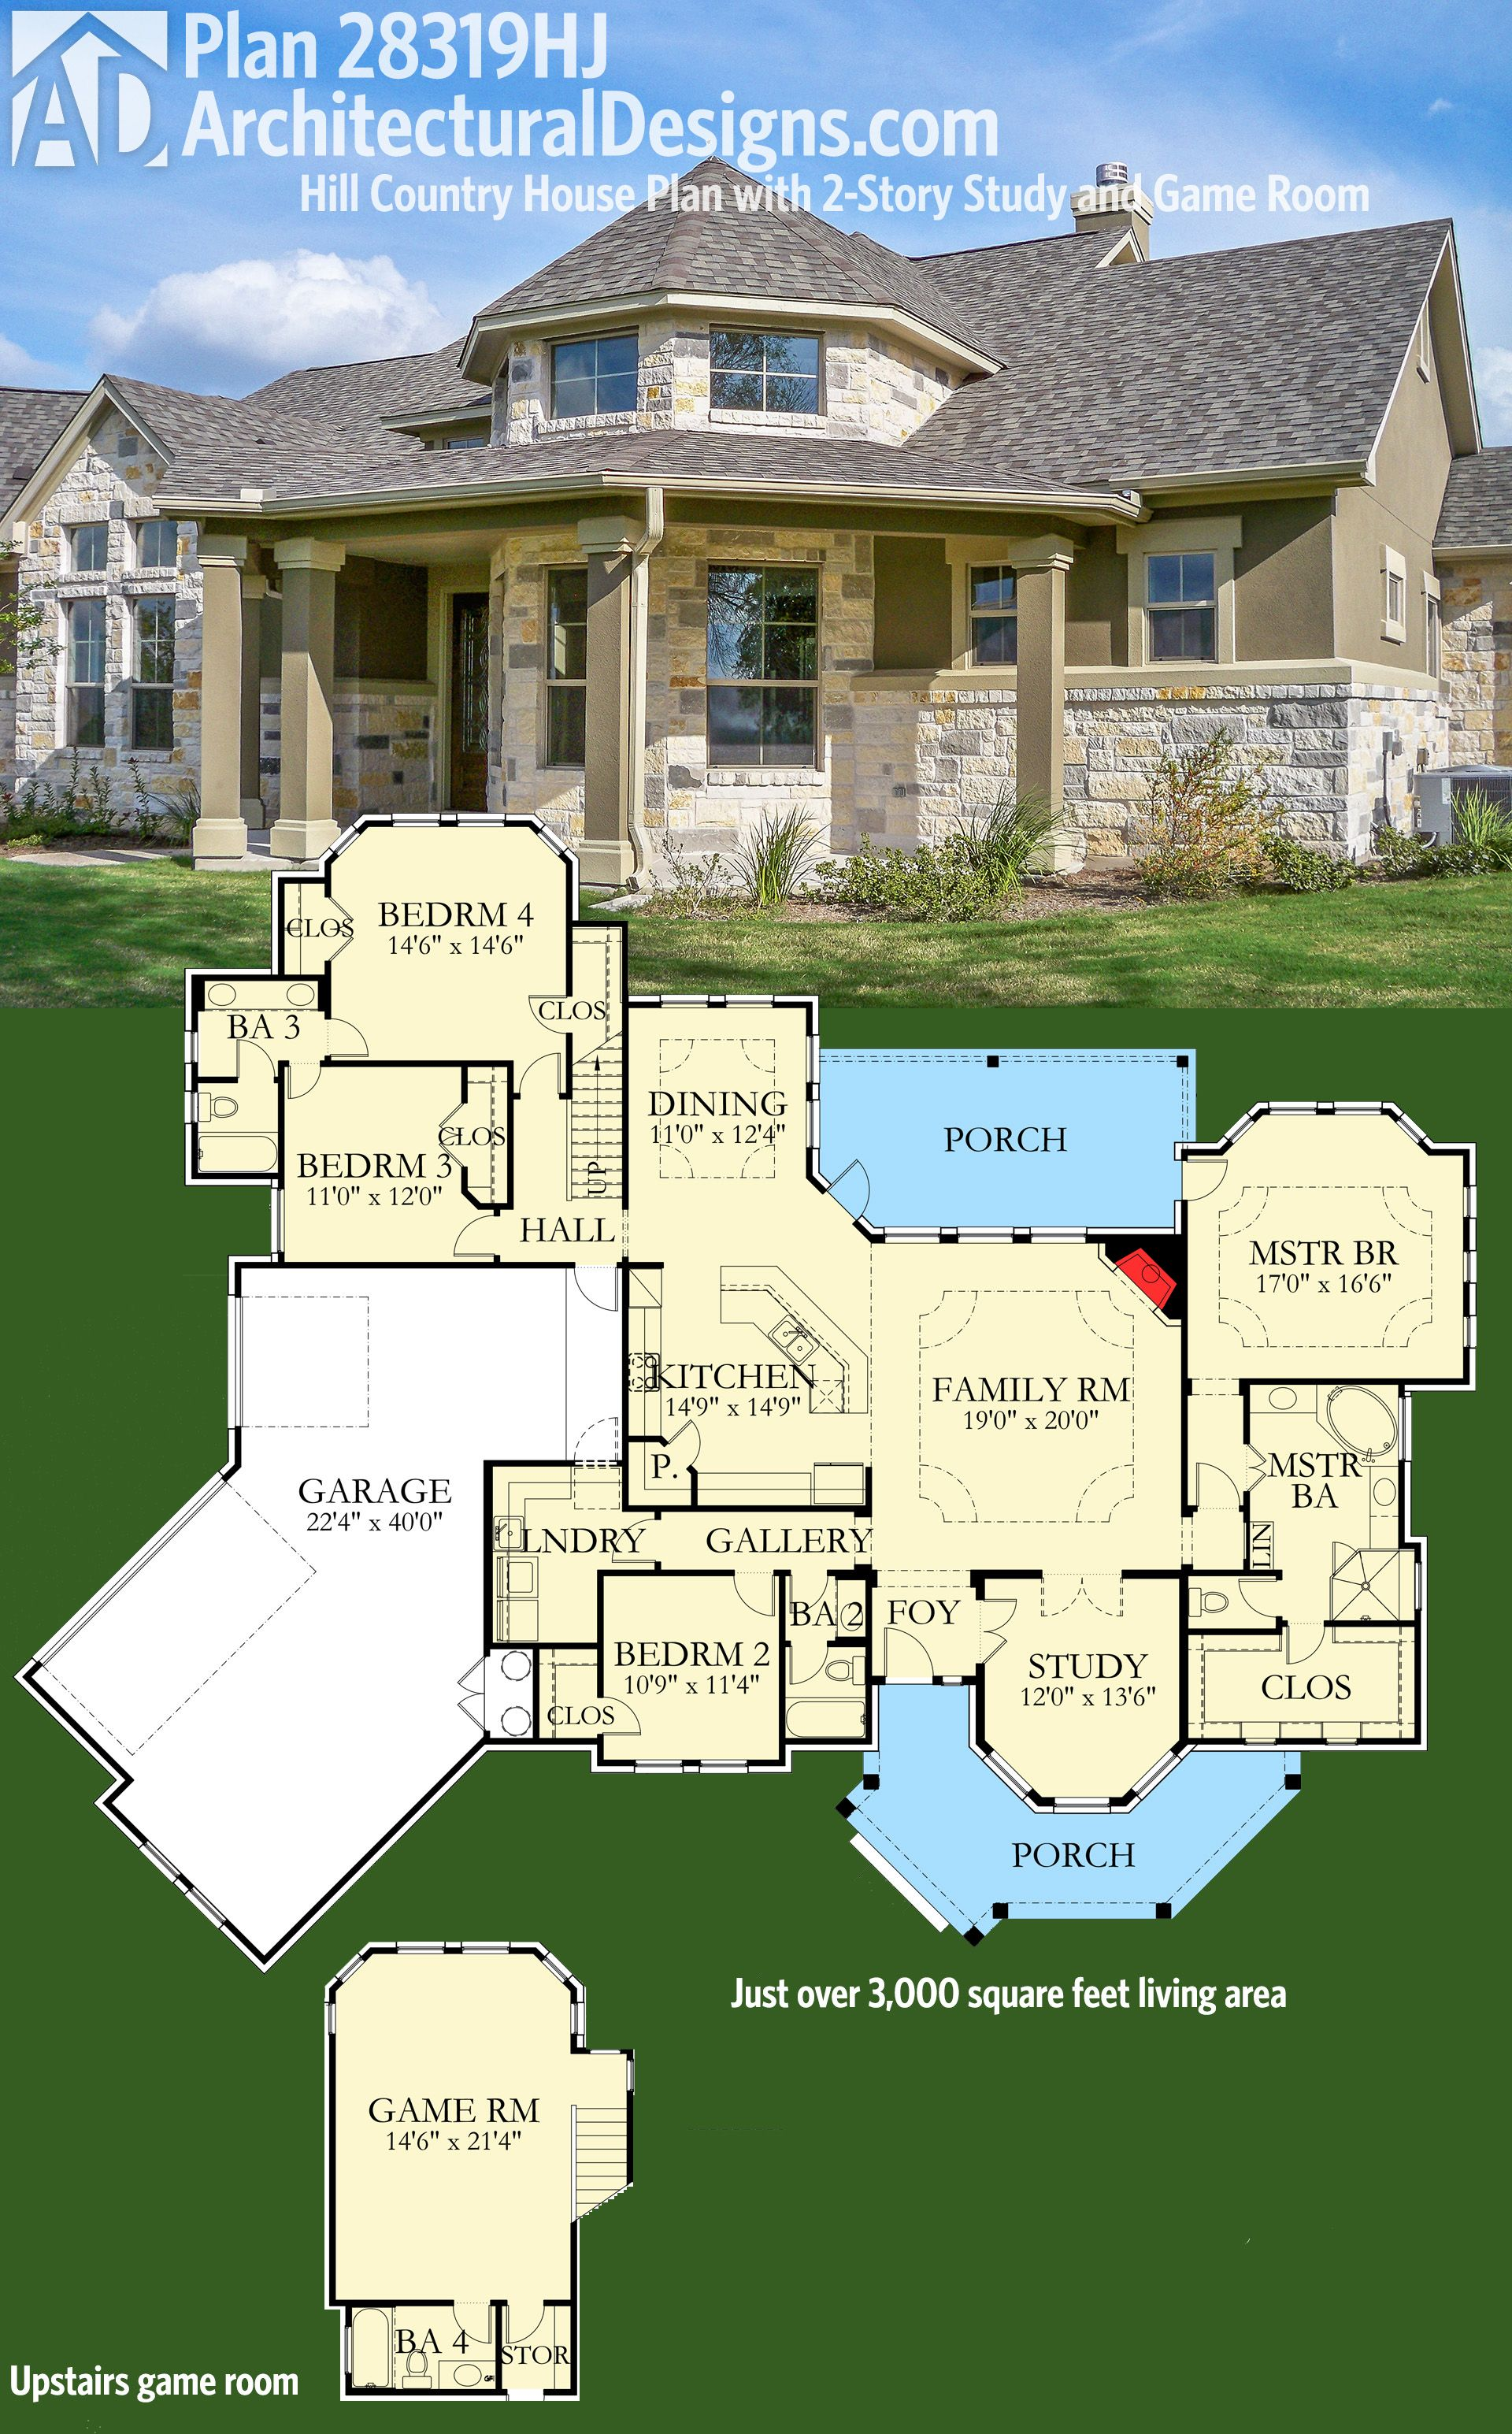 Plan 28319hj Hill Country House Plan With 2 Story Study